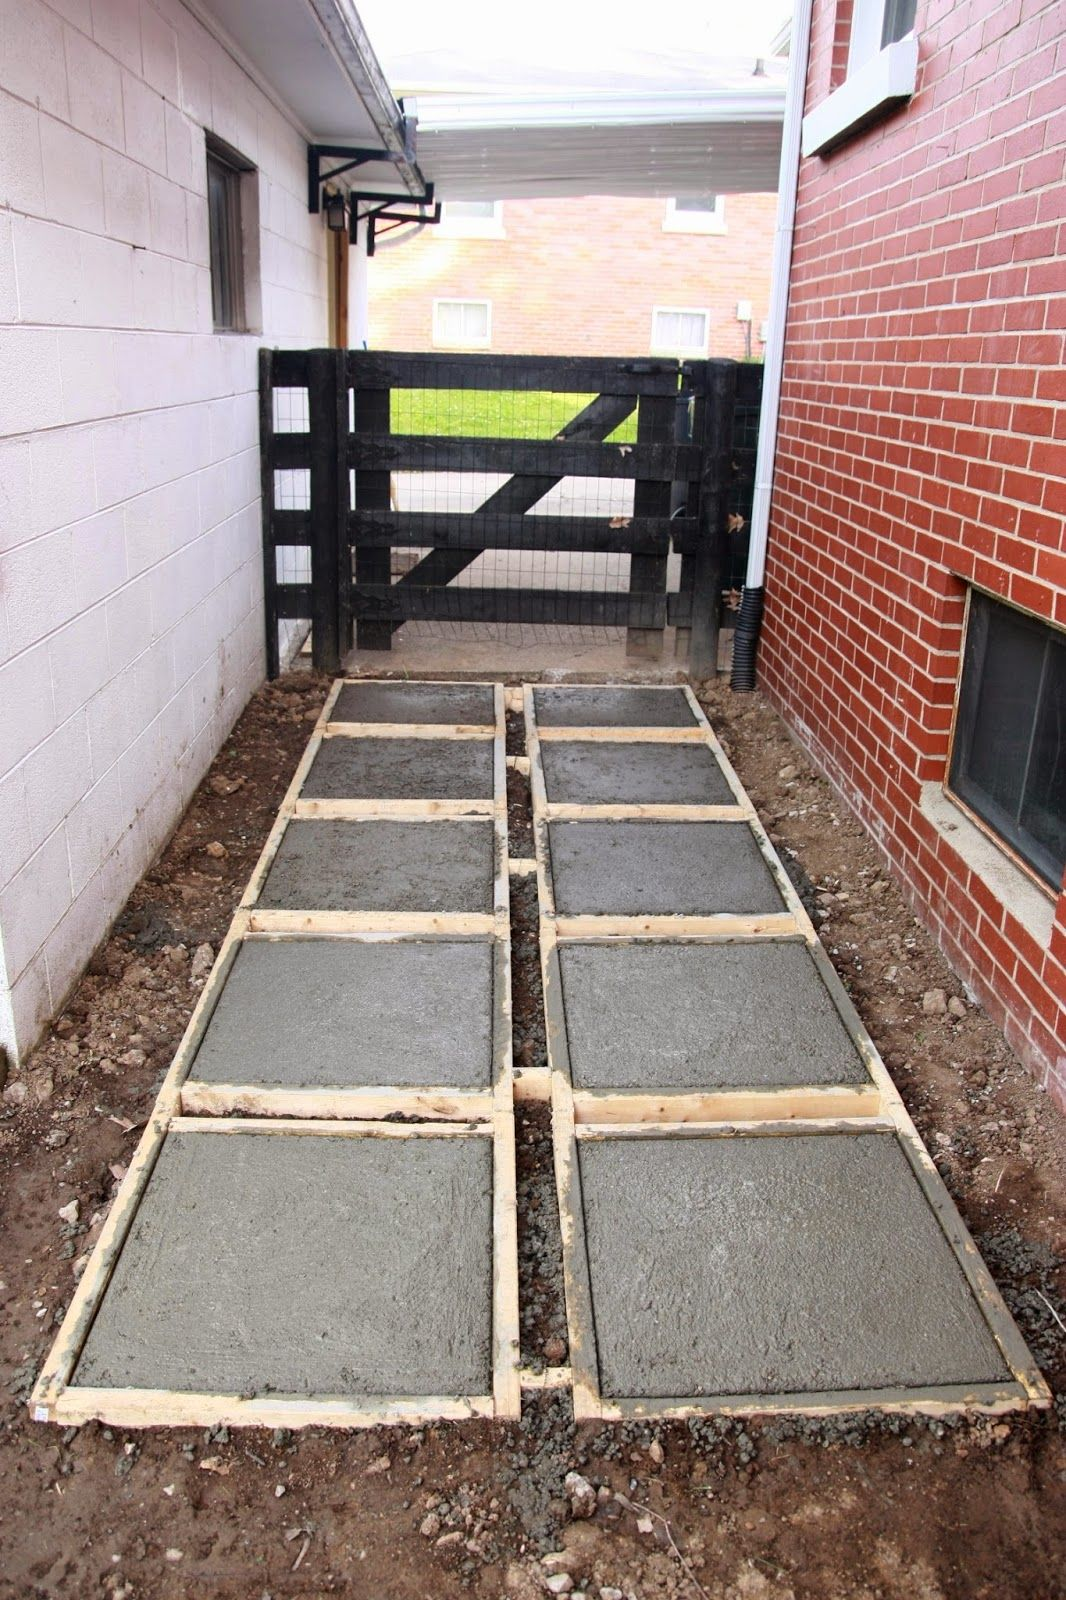 Over on Dover Pouring Concrete Pavers Backyard Makeover